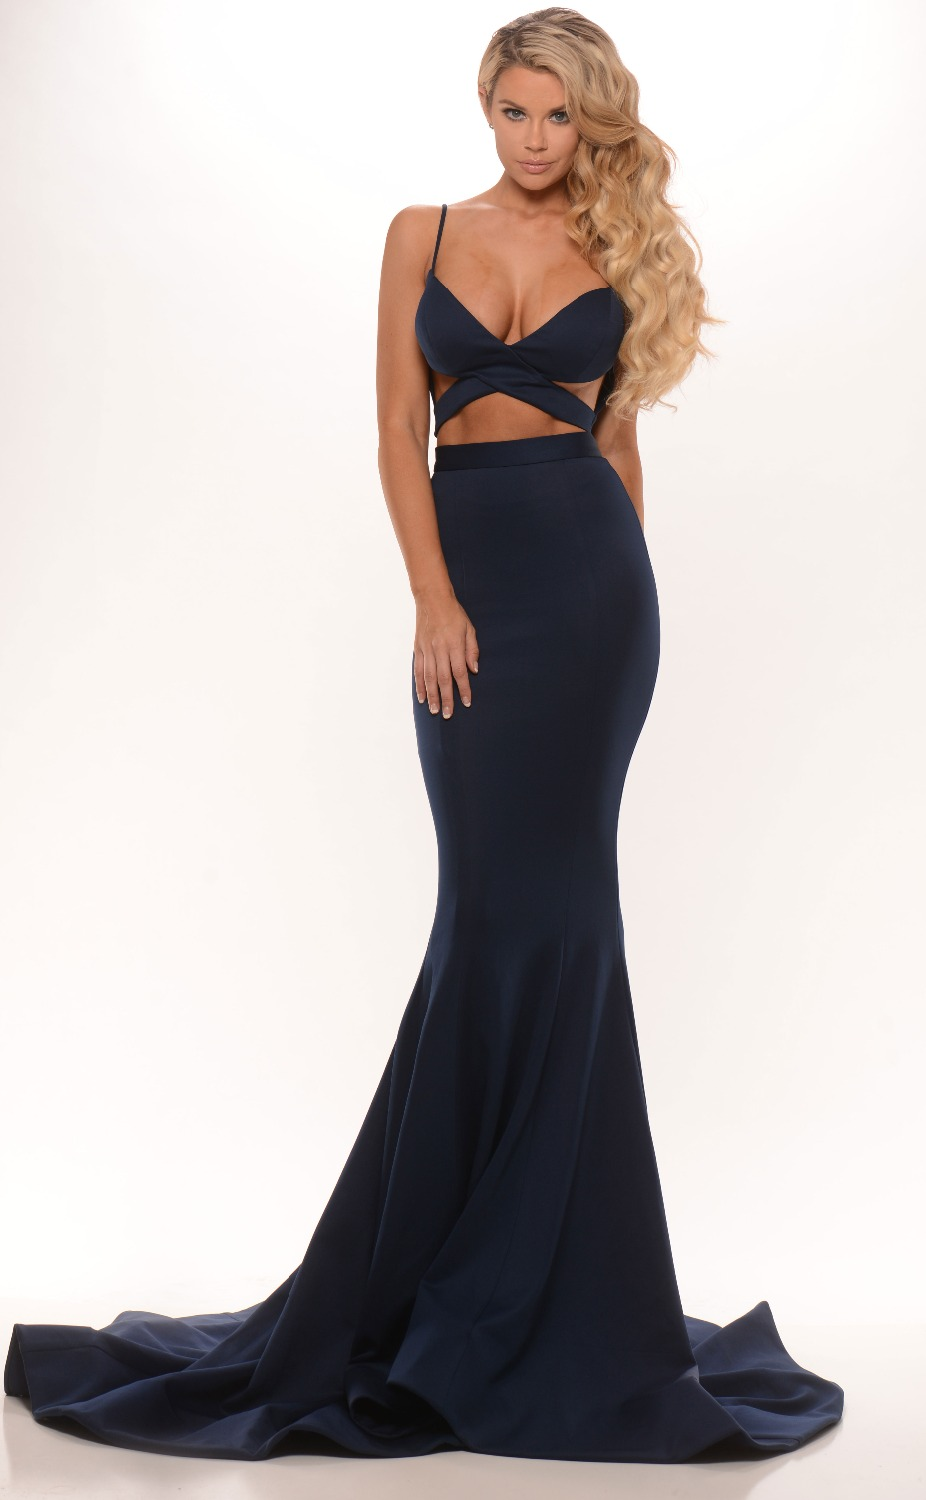 Tall Prom Dress Promotion-Shop for Promotional Tall Prom Dress on ...